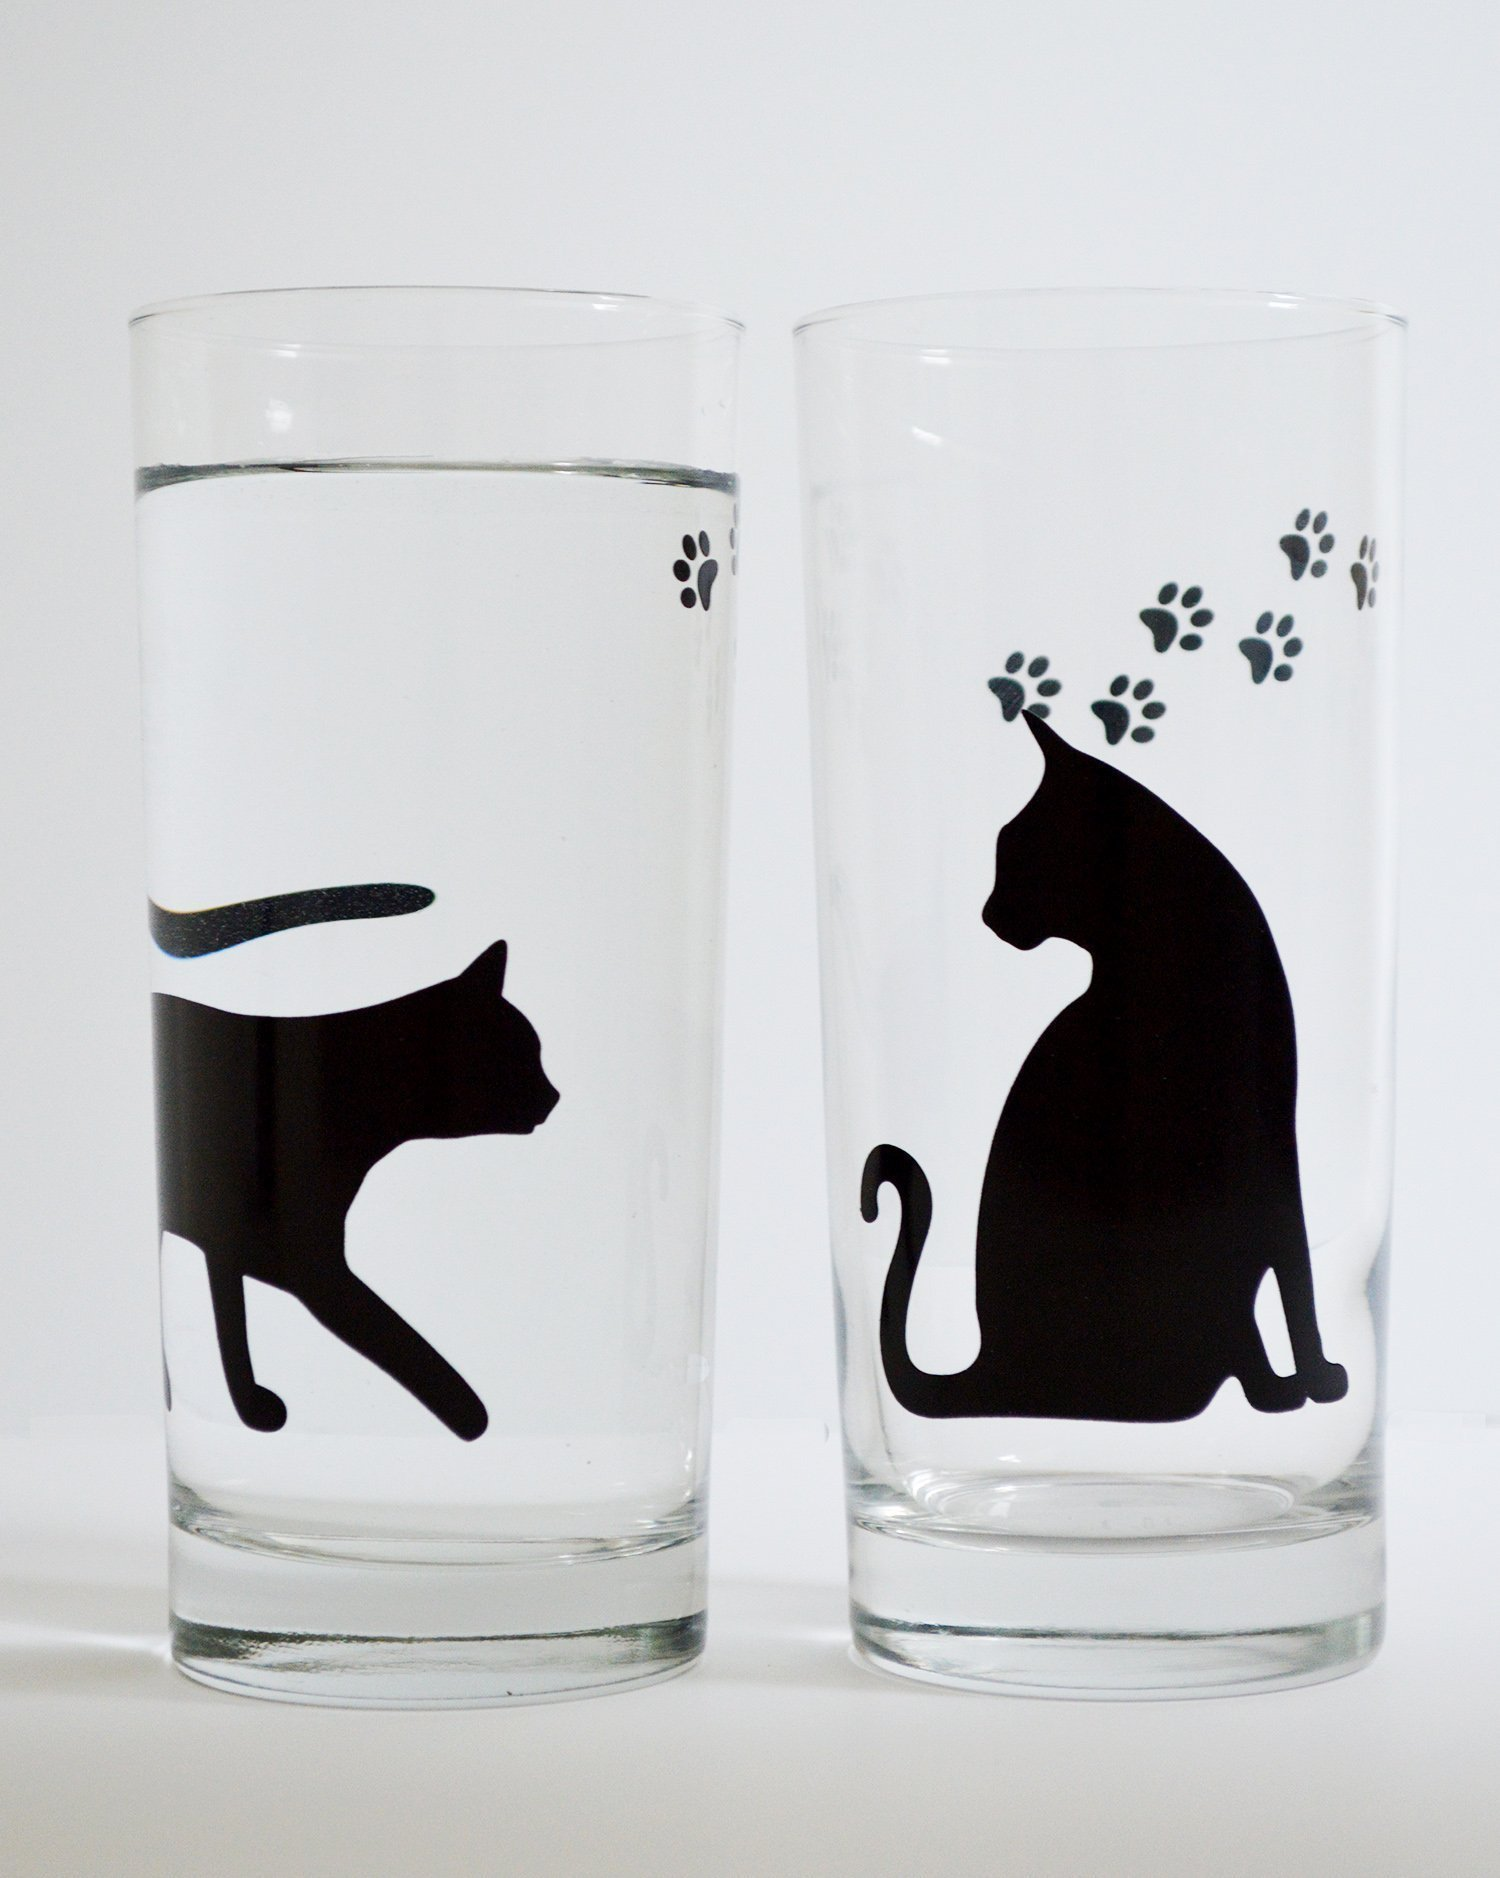 Cat and Paws Everyday Drinking Glasses Set of Two 16 oz Glasses, Cat Lover Gifts, Cat Glasses, Cats